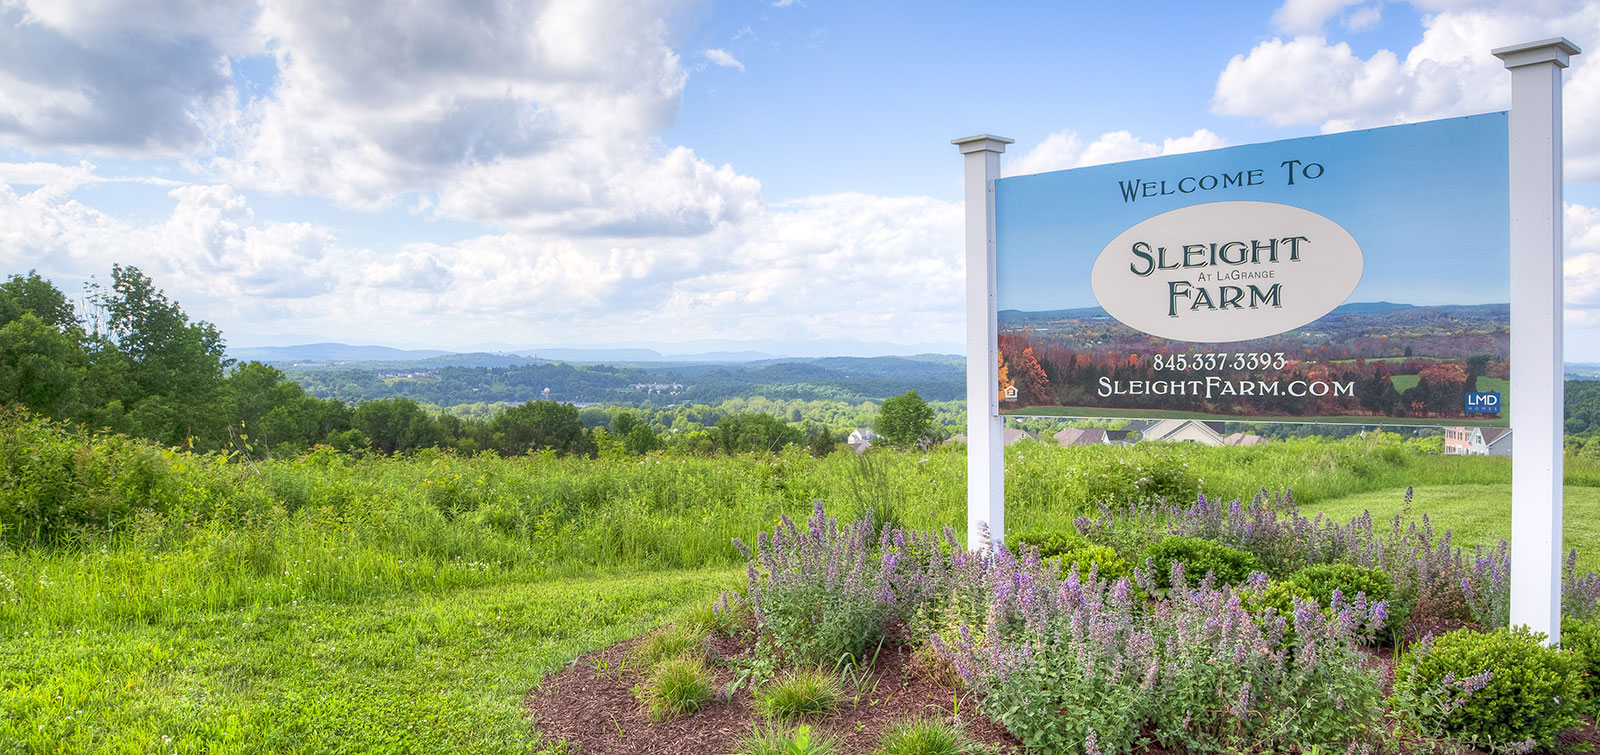 Mountain views from Sleight Farm new construction home community near Poughkeepsie NY